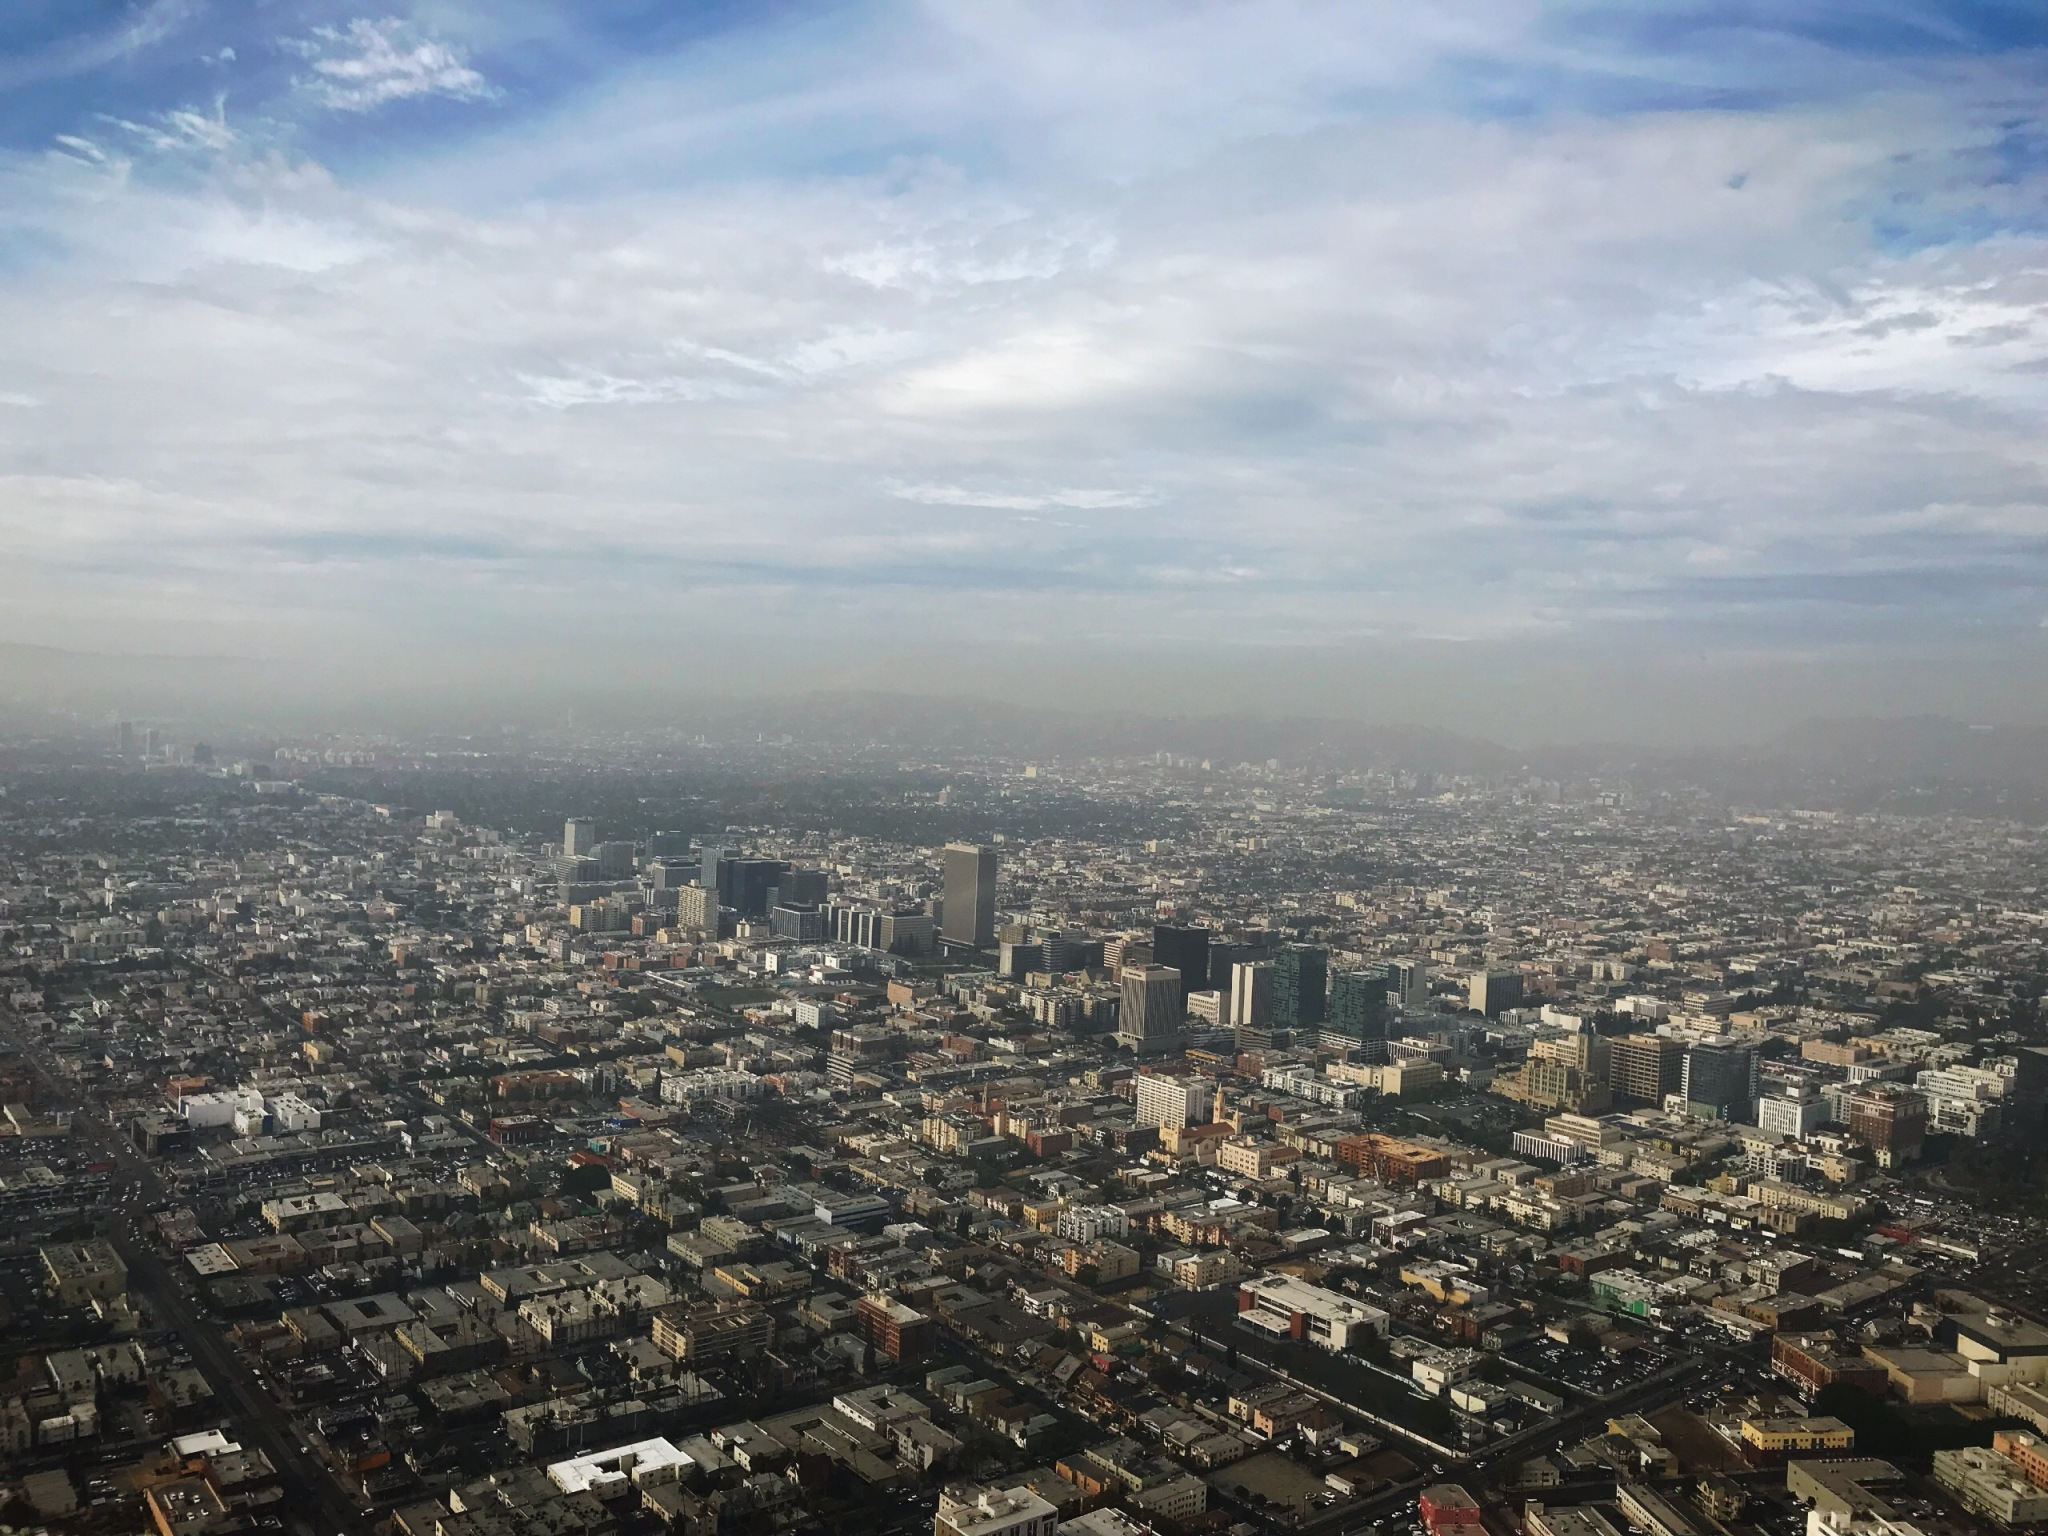 Wilshire Blvd view from helicopter